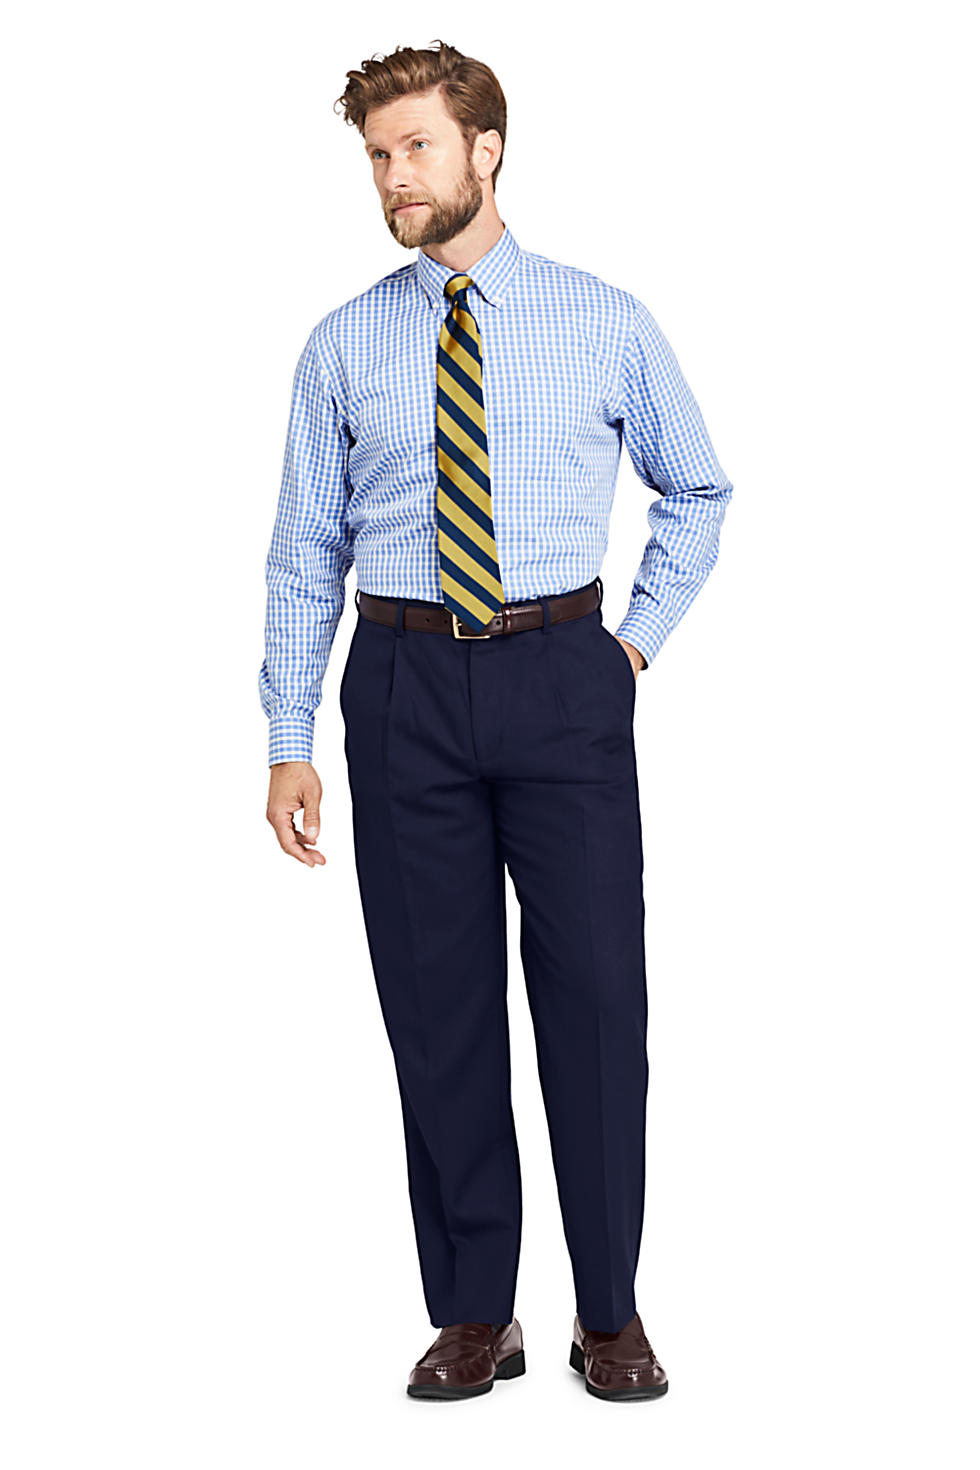 Lands' End Men's Year'rounder Comfort Waist Pleated Wool Dress Pants (various colors/sizes)